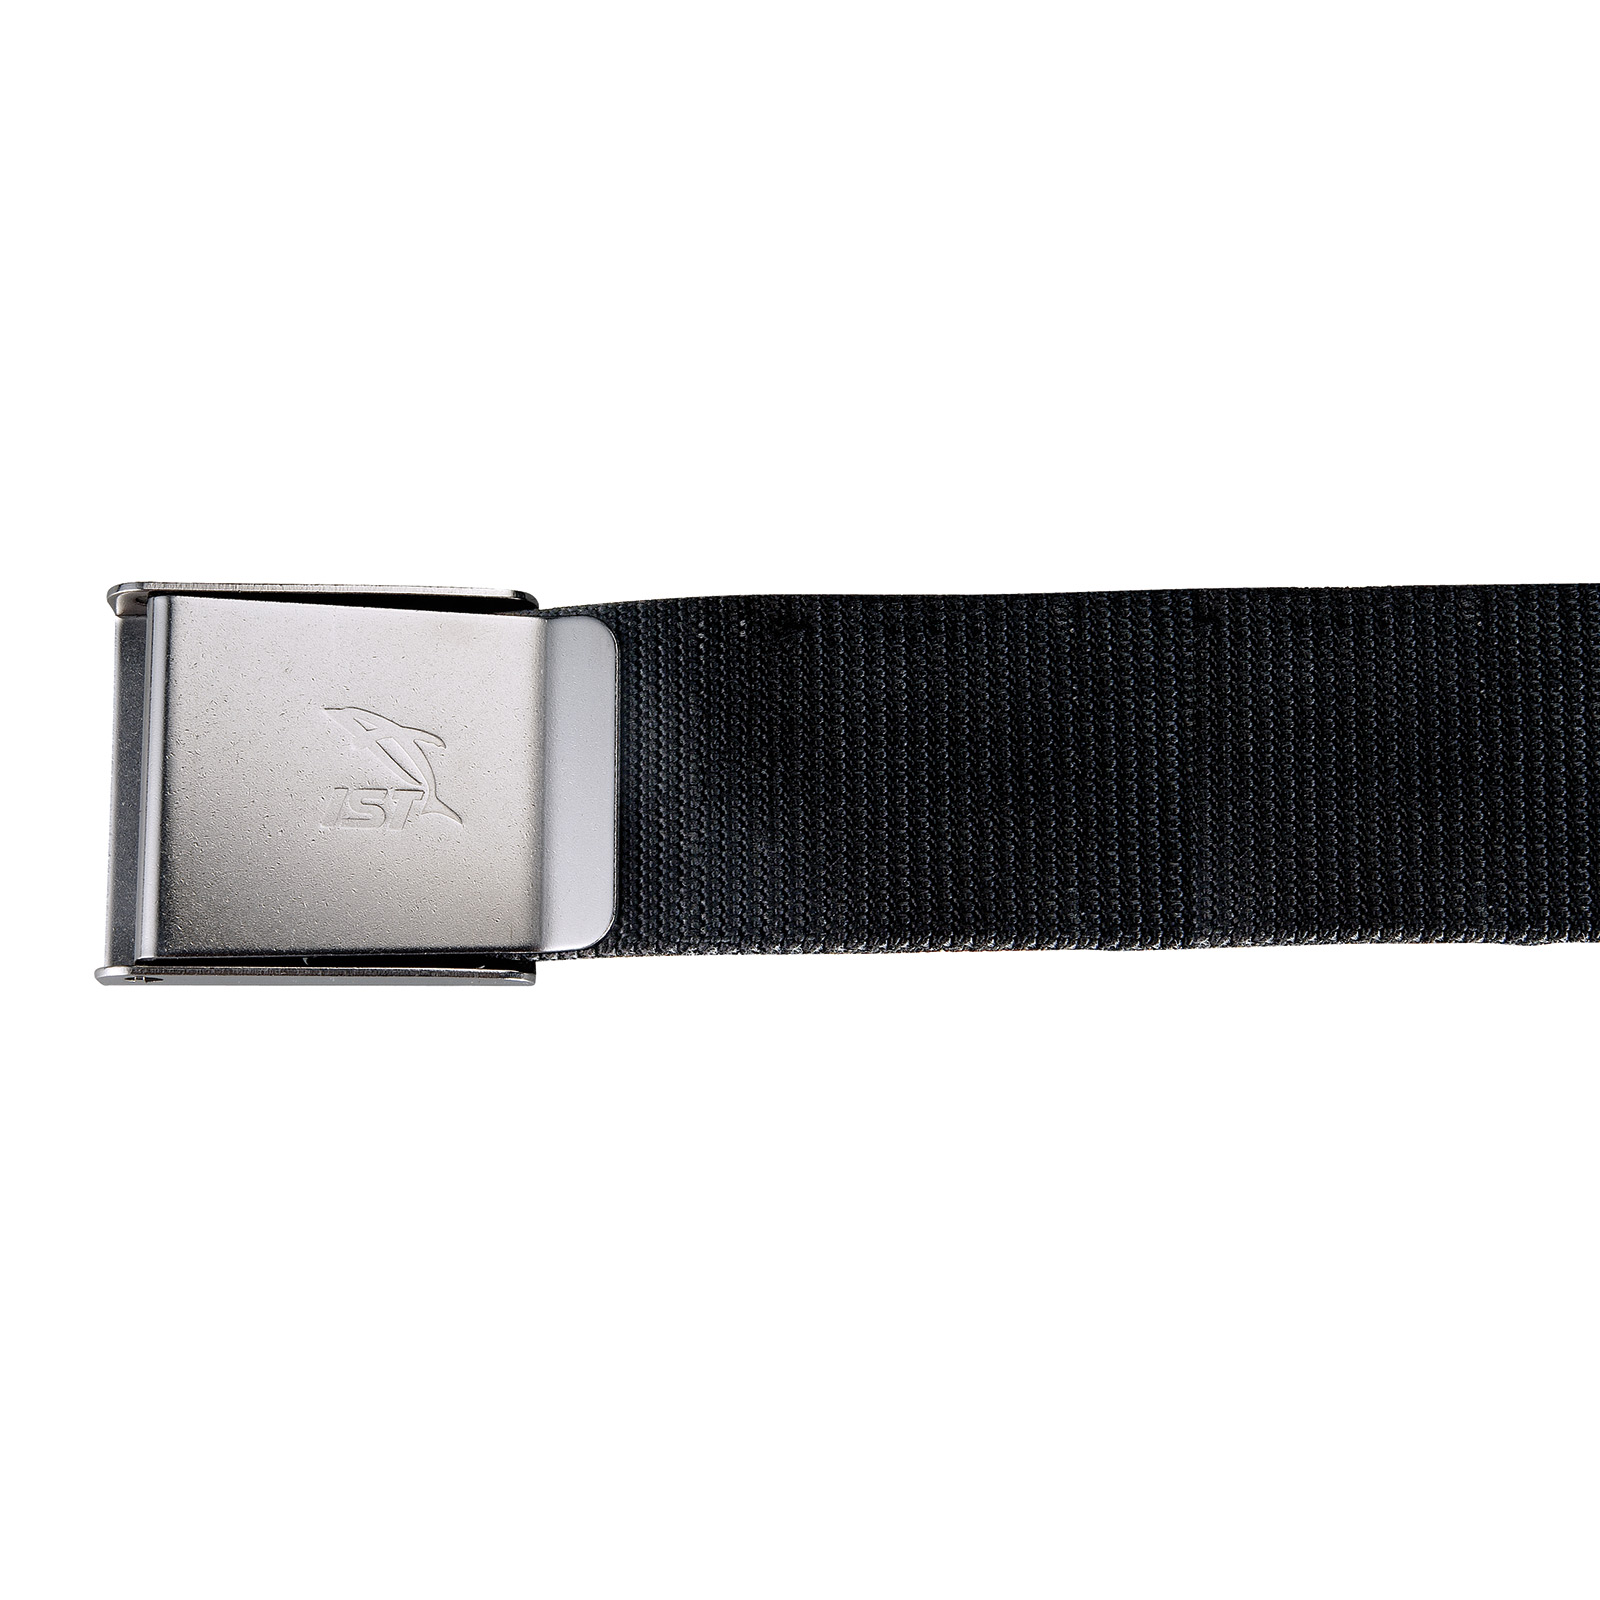 5 Foot Weight Belt with Stainless Steel Buckle